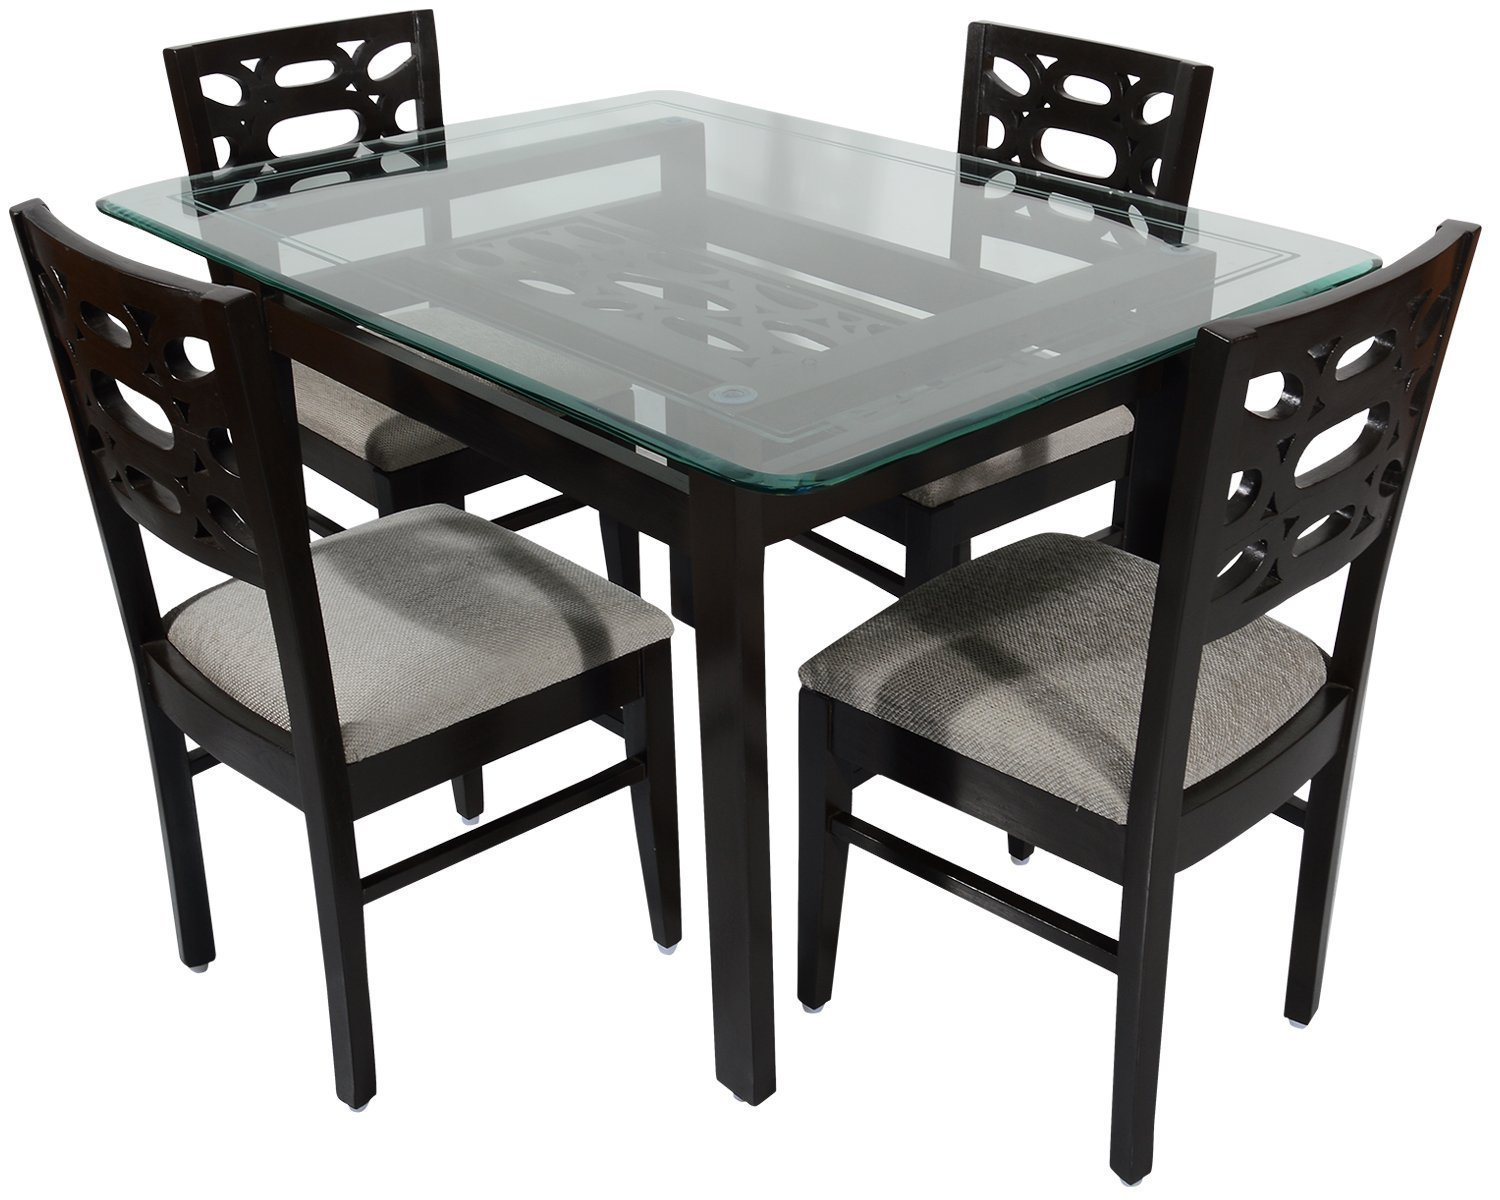 Rawat Romania Four Seater Dining Table (Muticolour)